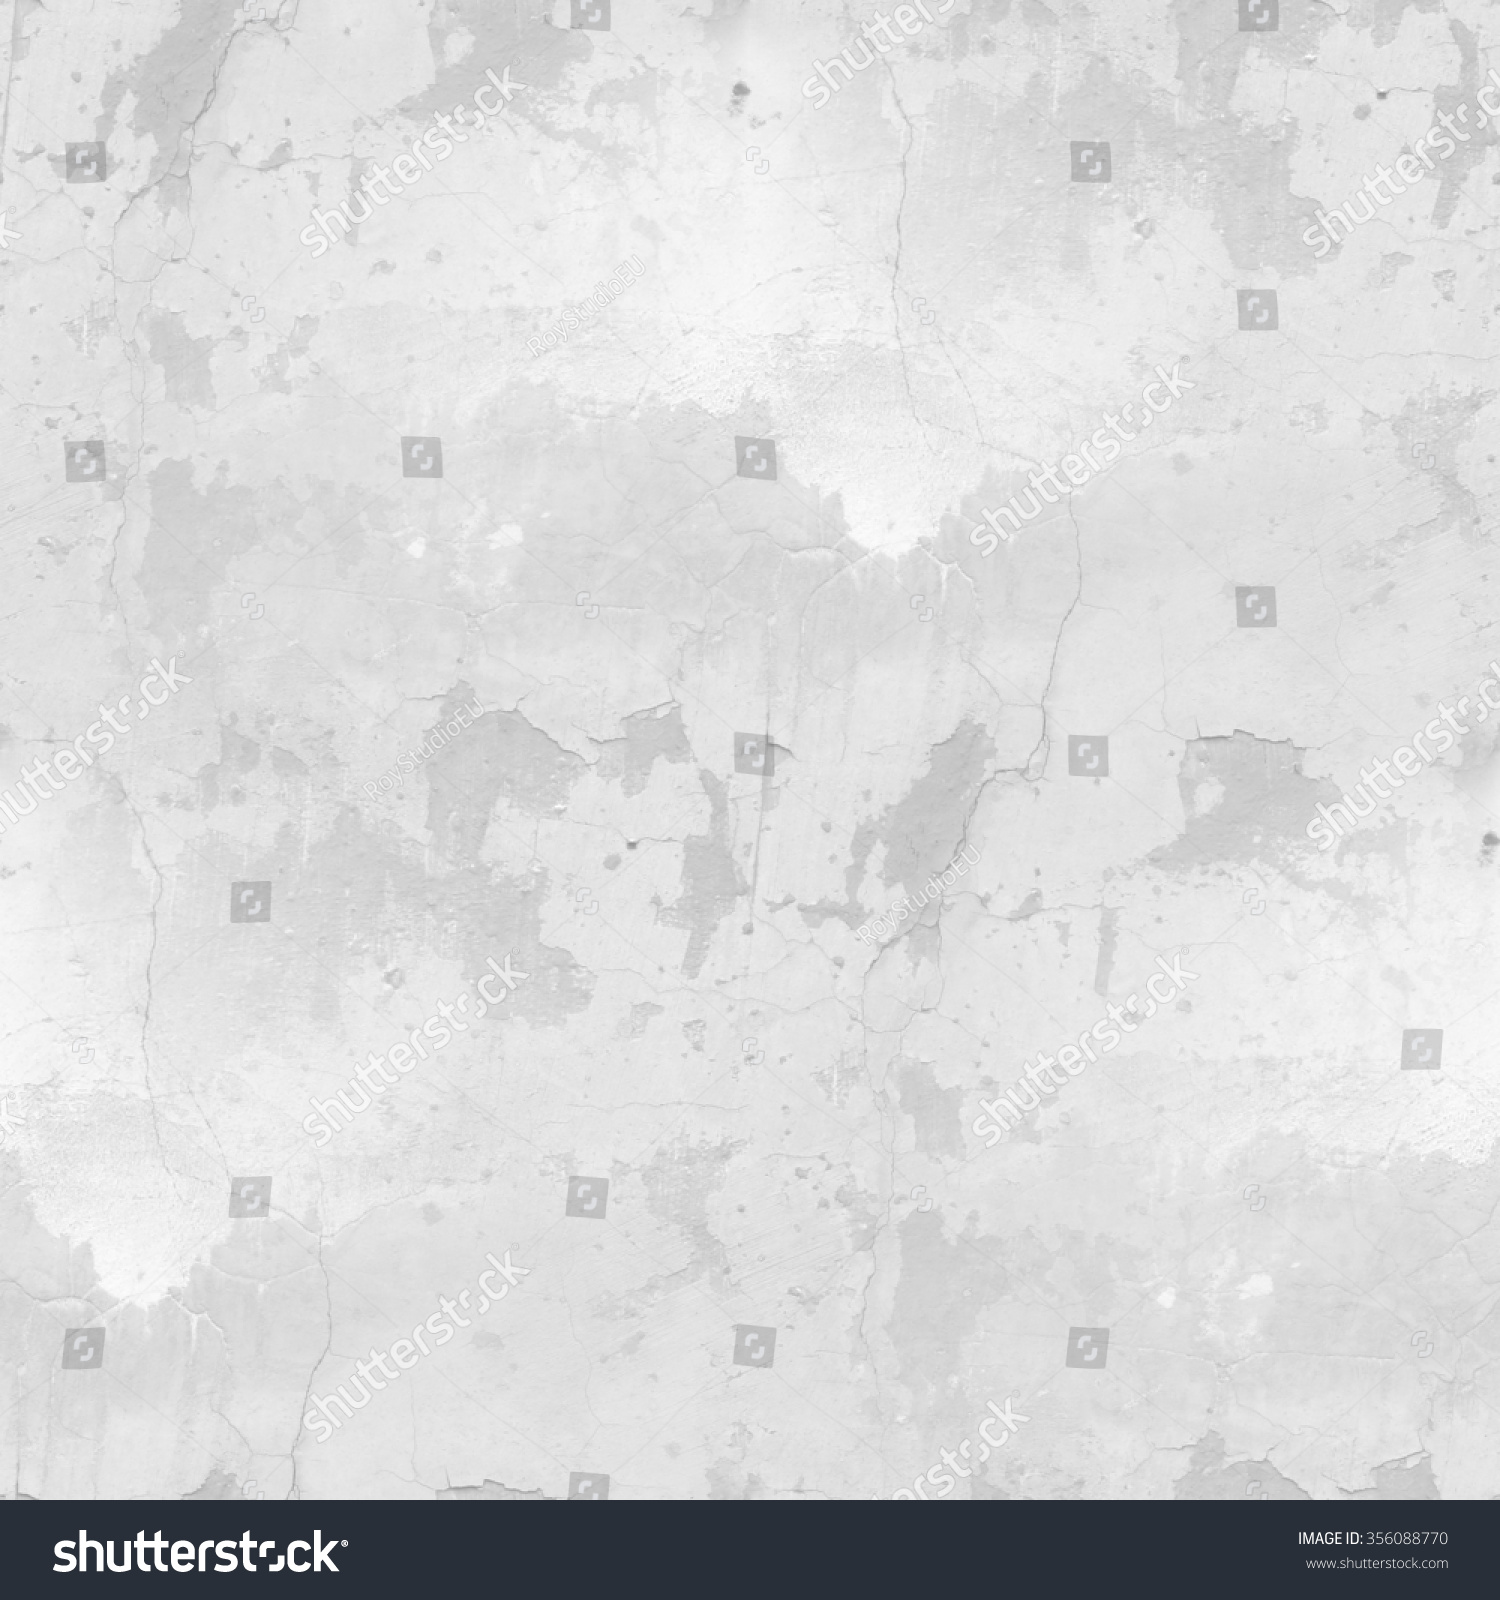 Wall paint texture seamless - White Background Peeling Paint Old Wall Texture Seamless Background